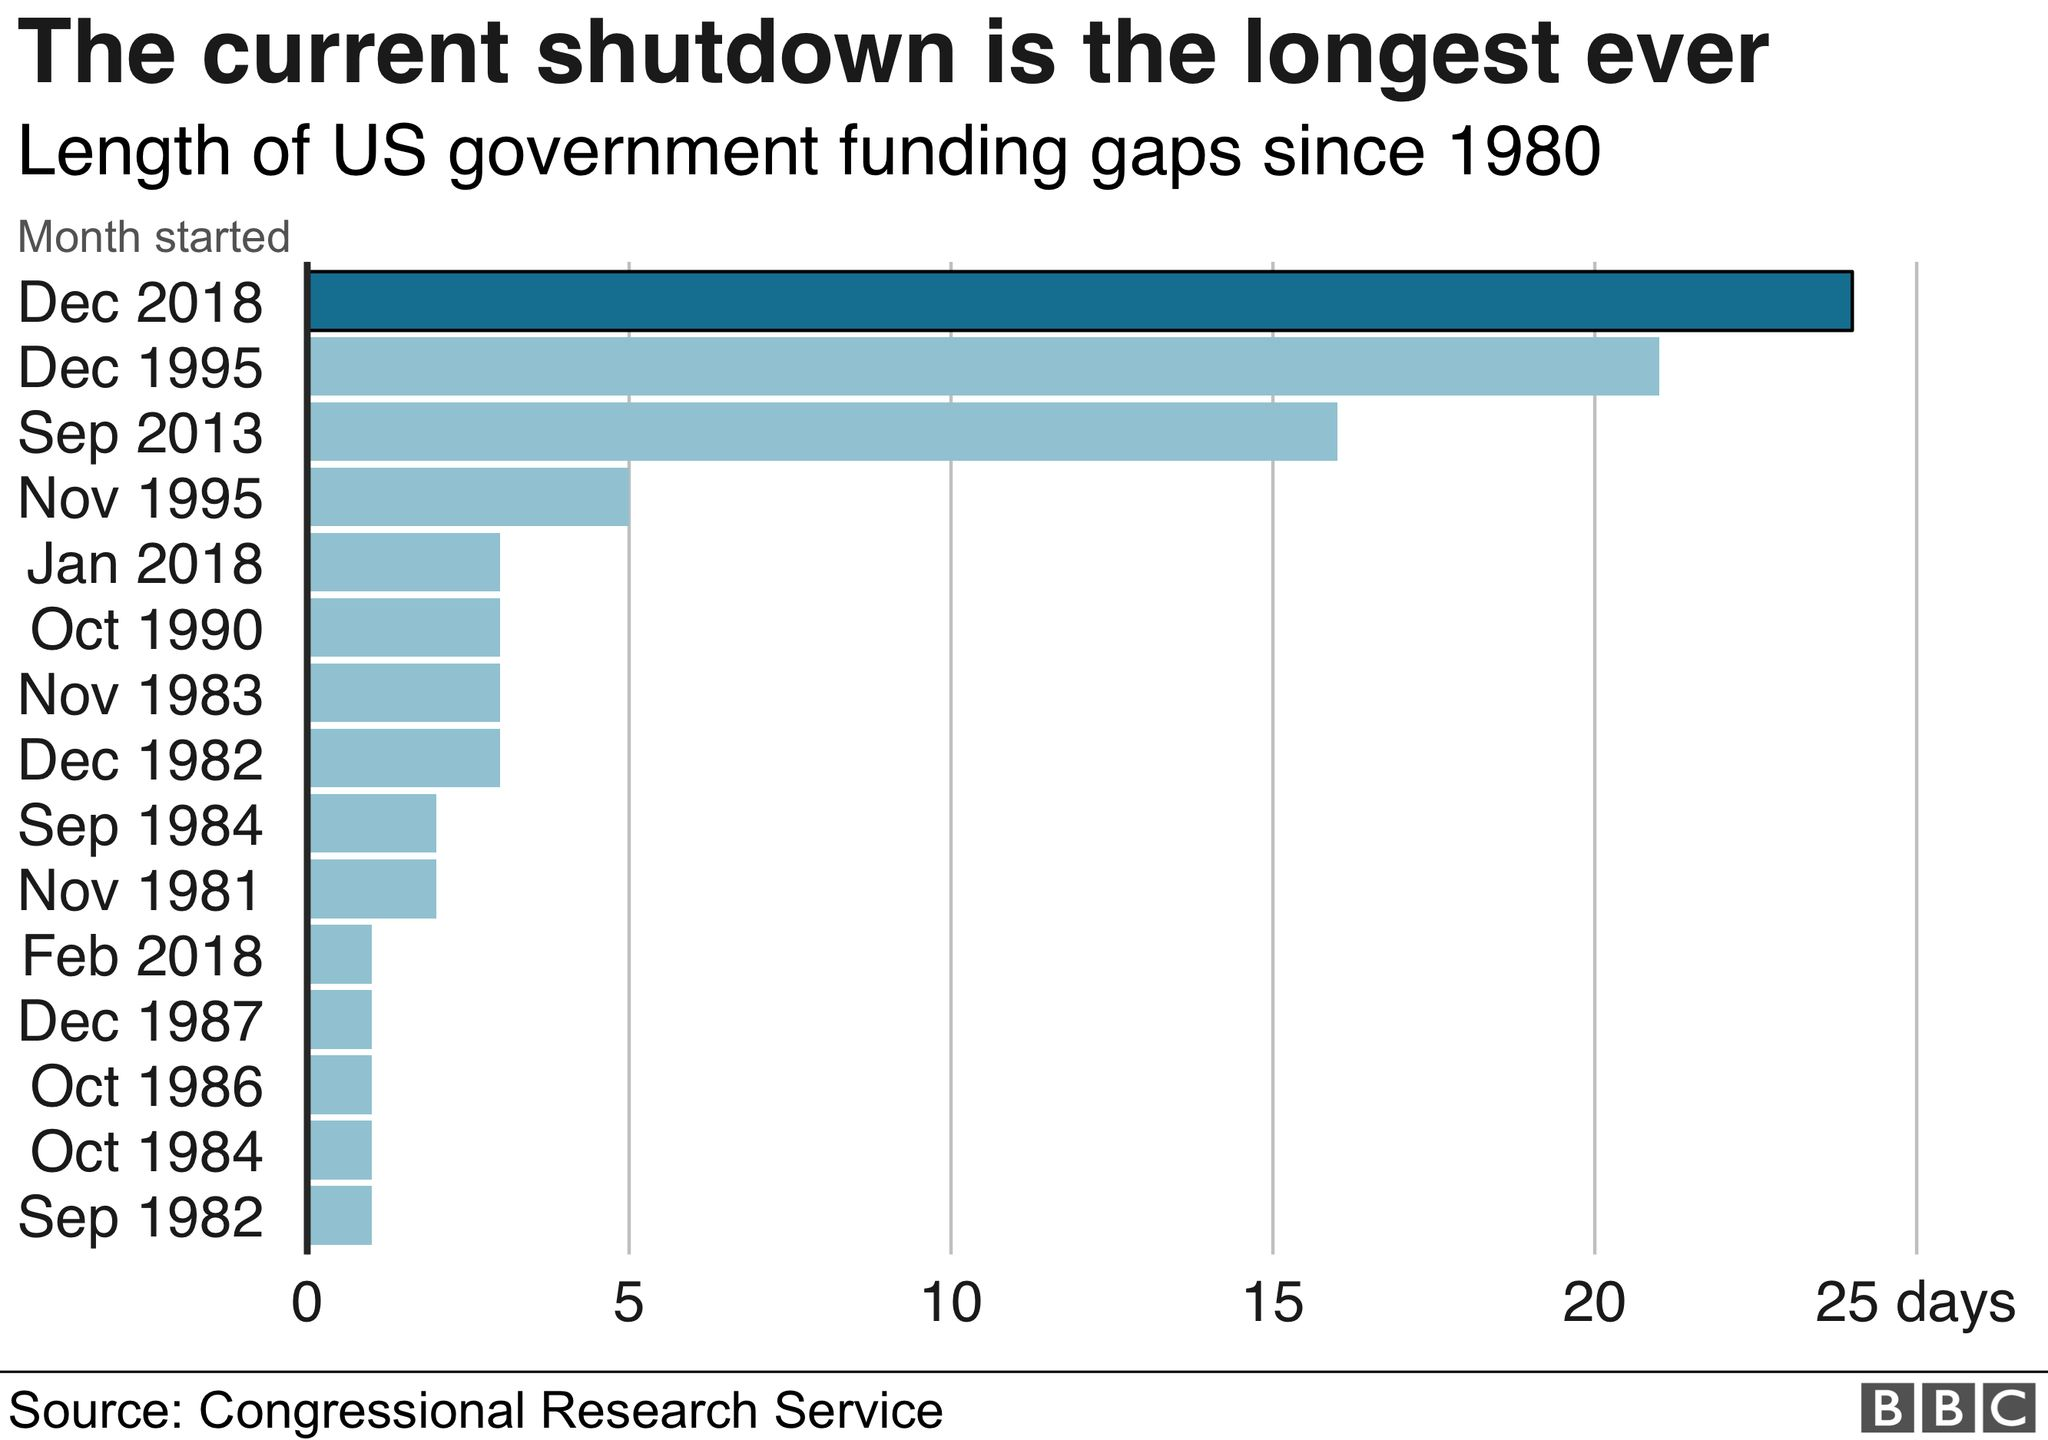 Shutdowns over the years